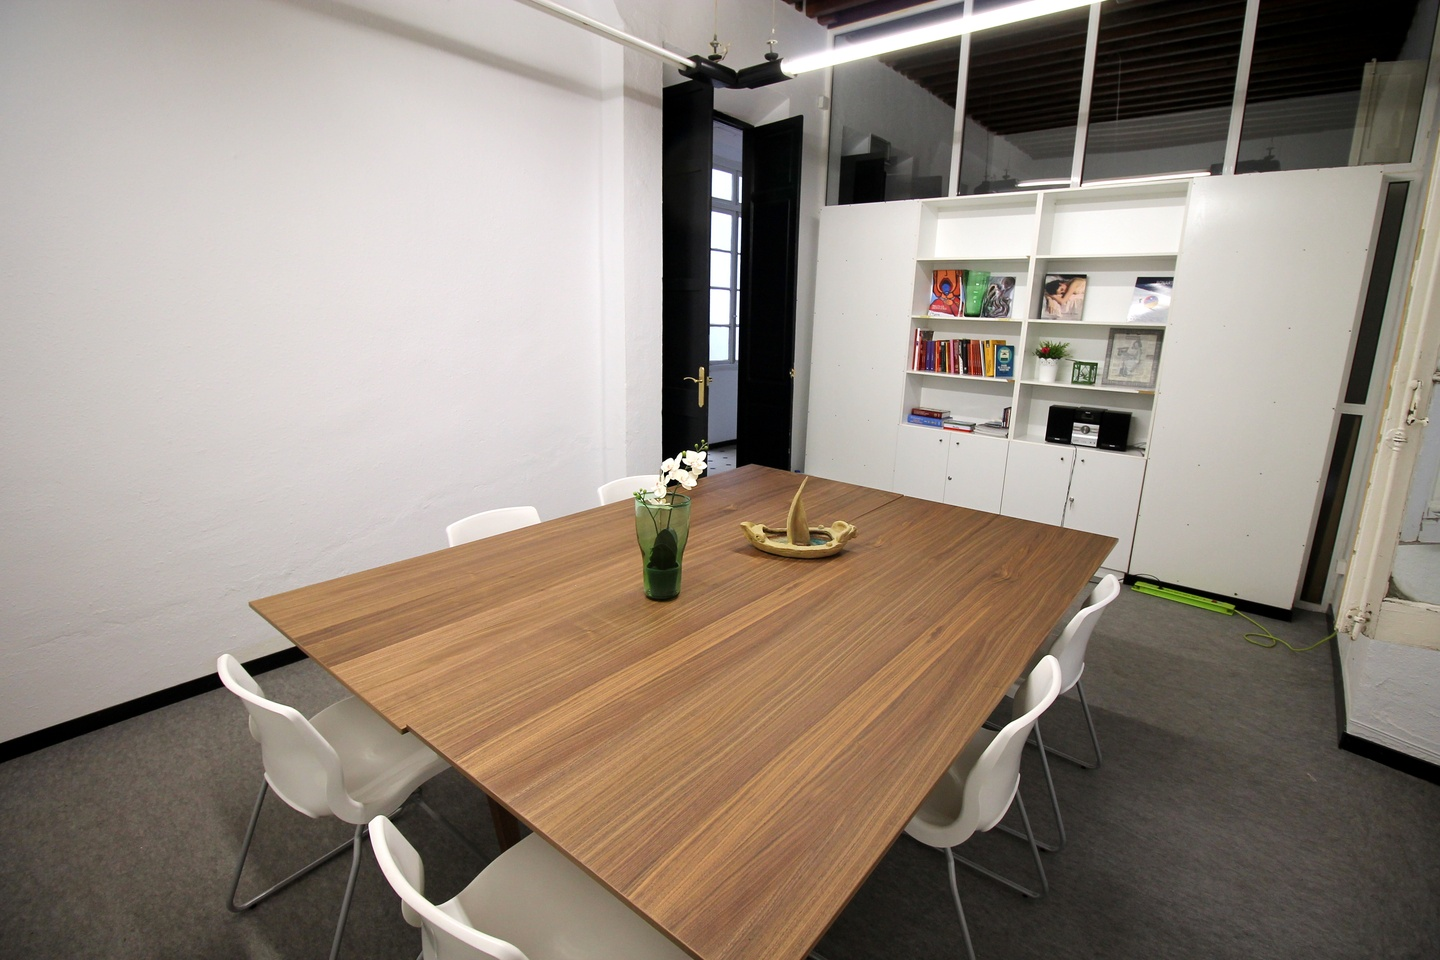 Malaga Train station meeting rooms Meeting room The Translation Factory - Meeting Room image 3